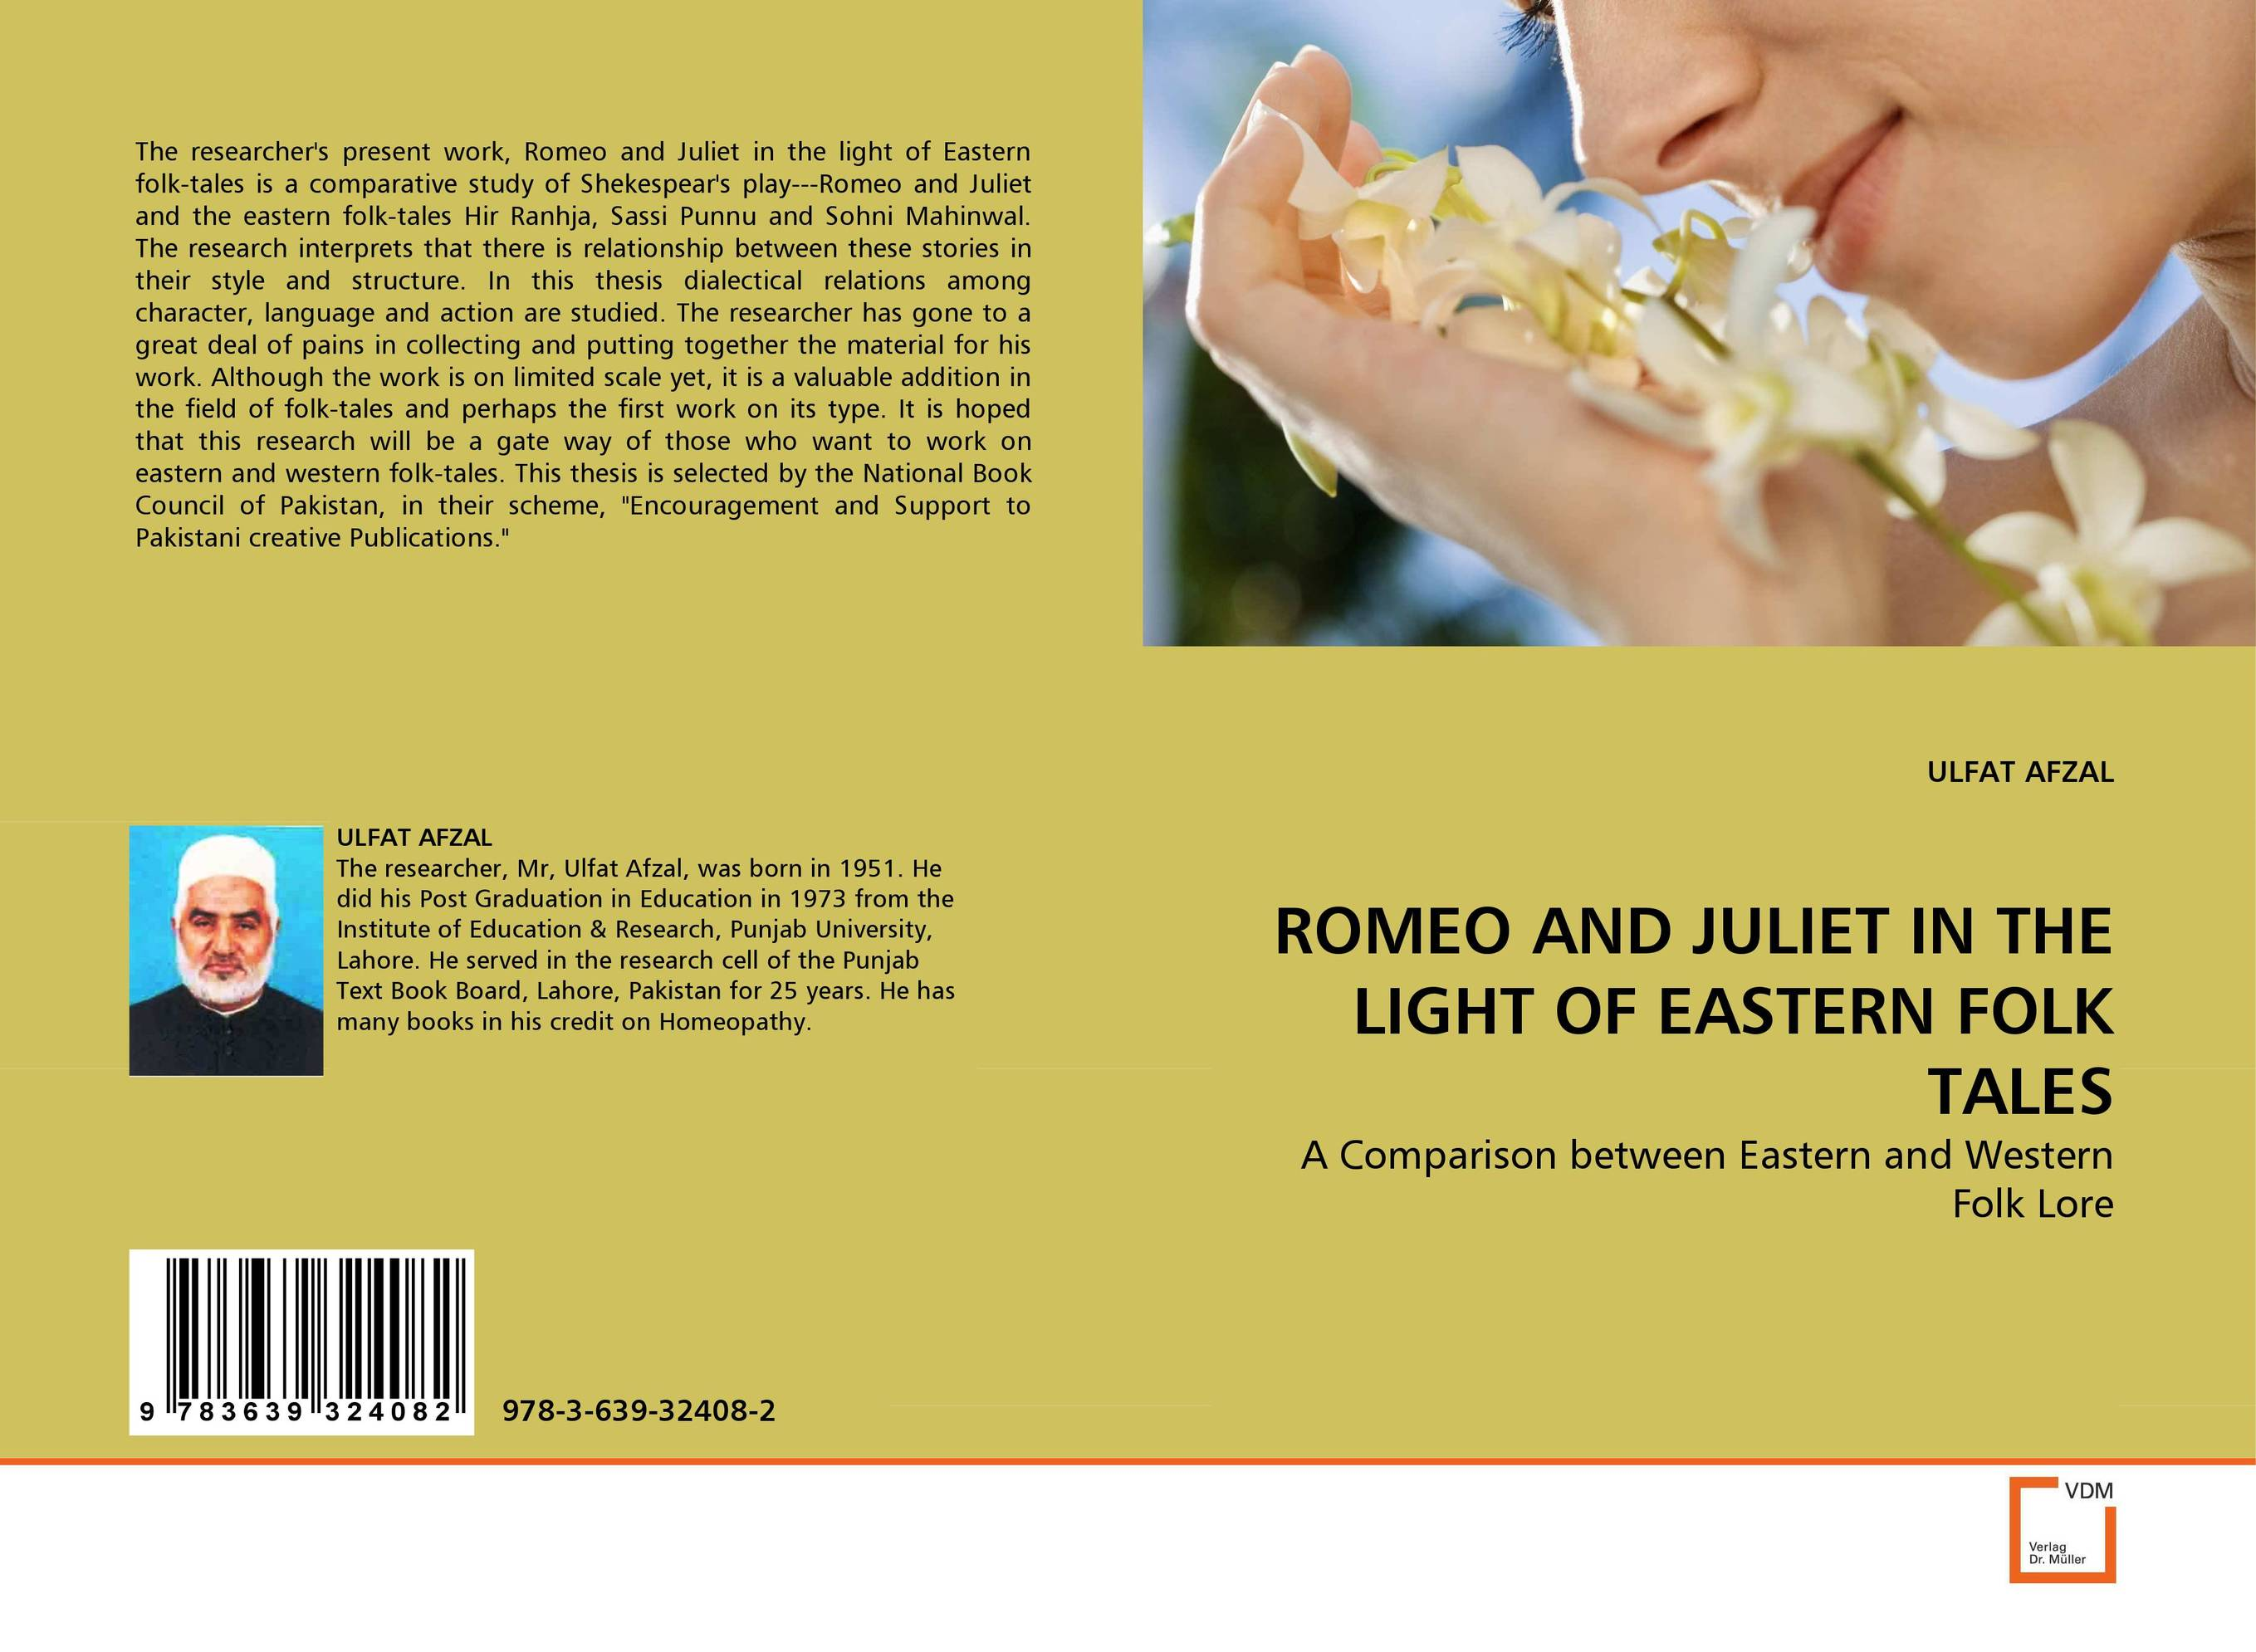 ROMEO AND JULIET IN THE LIGHT OF EASTERN FOLK TALES monsters of folk monsters of folk monsters of folk